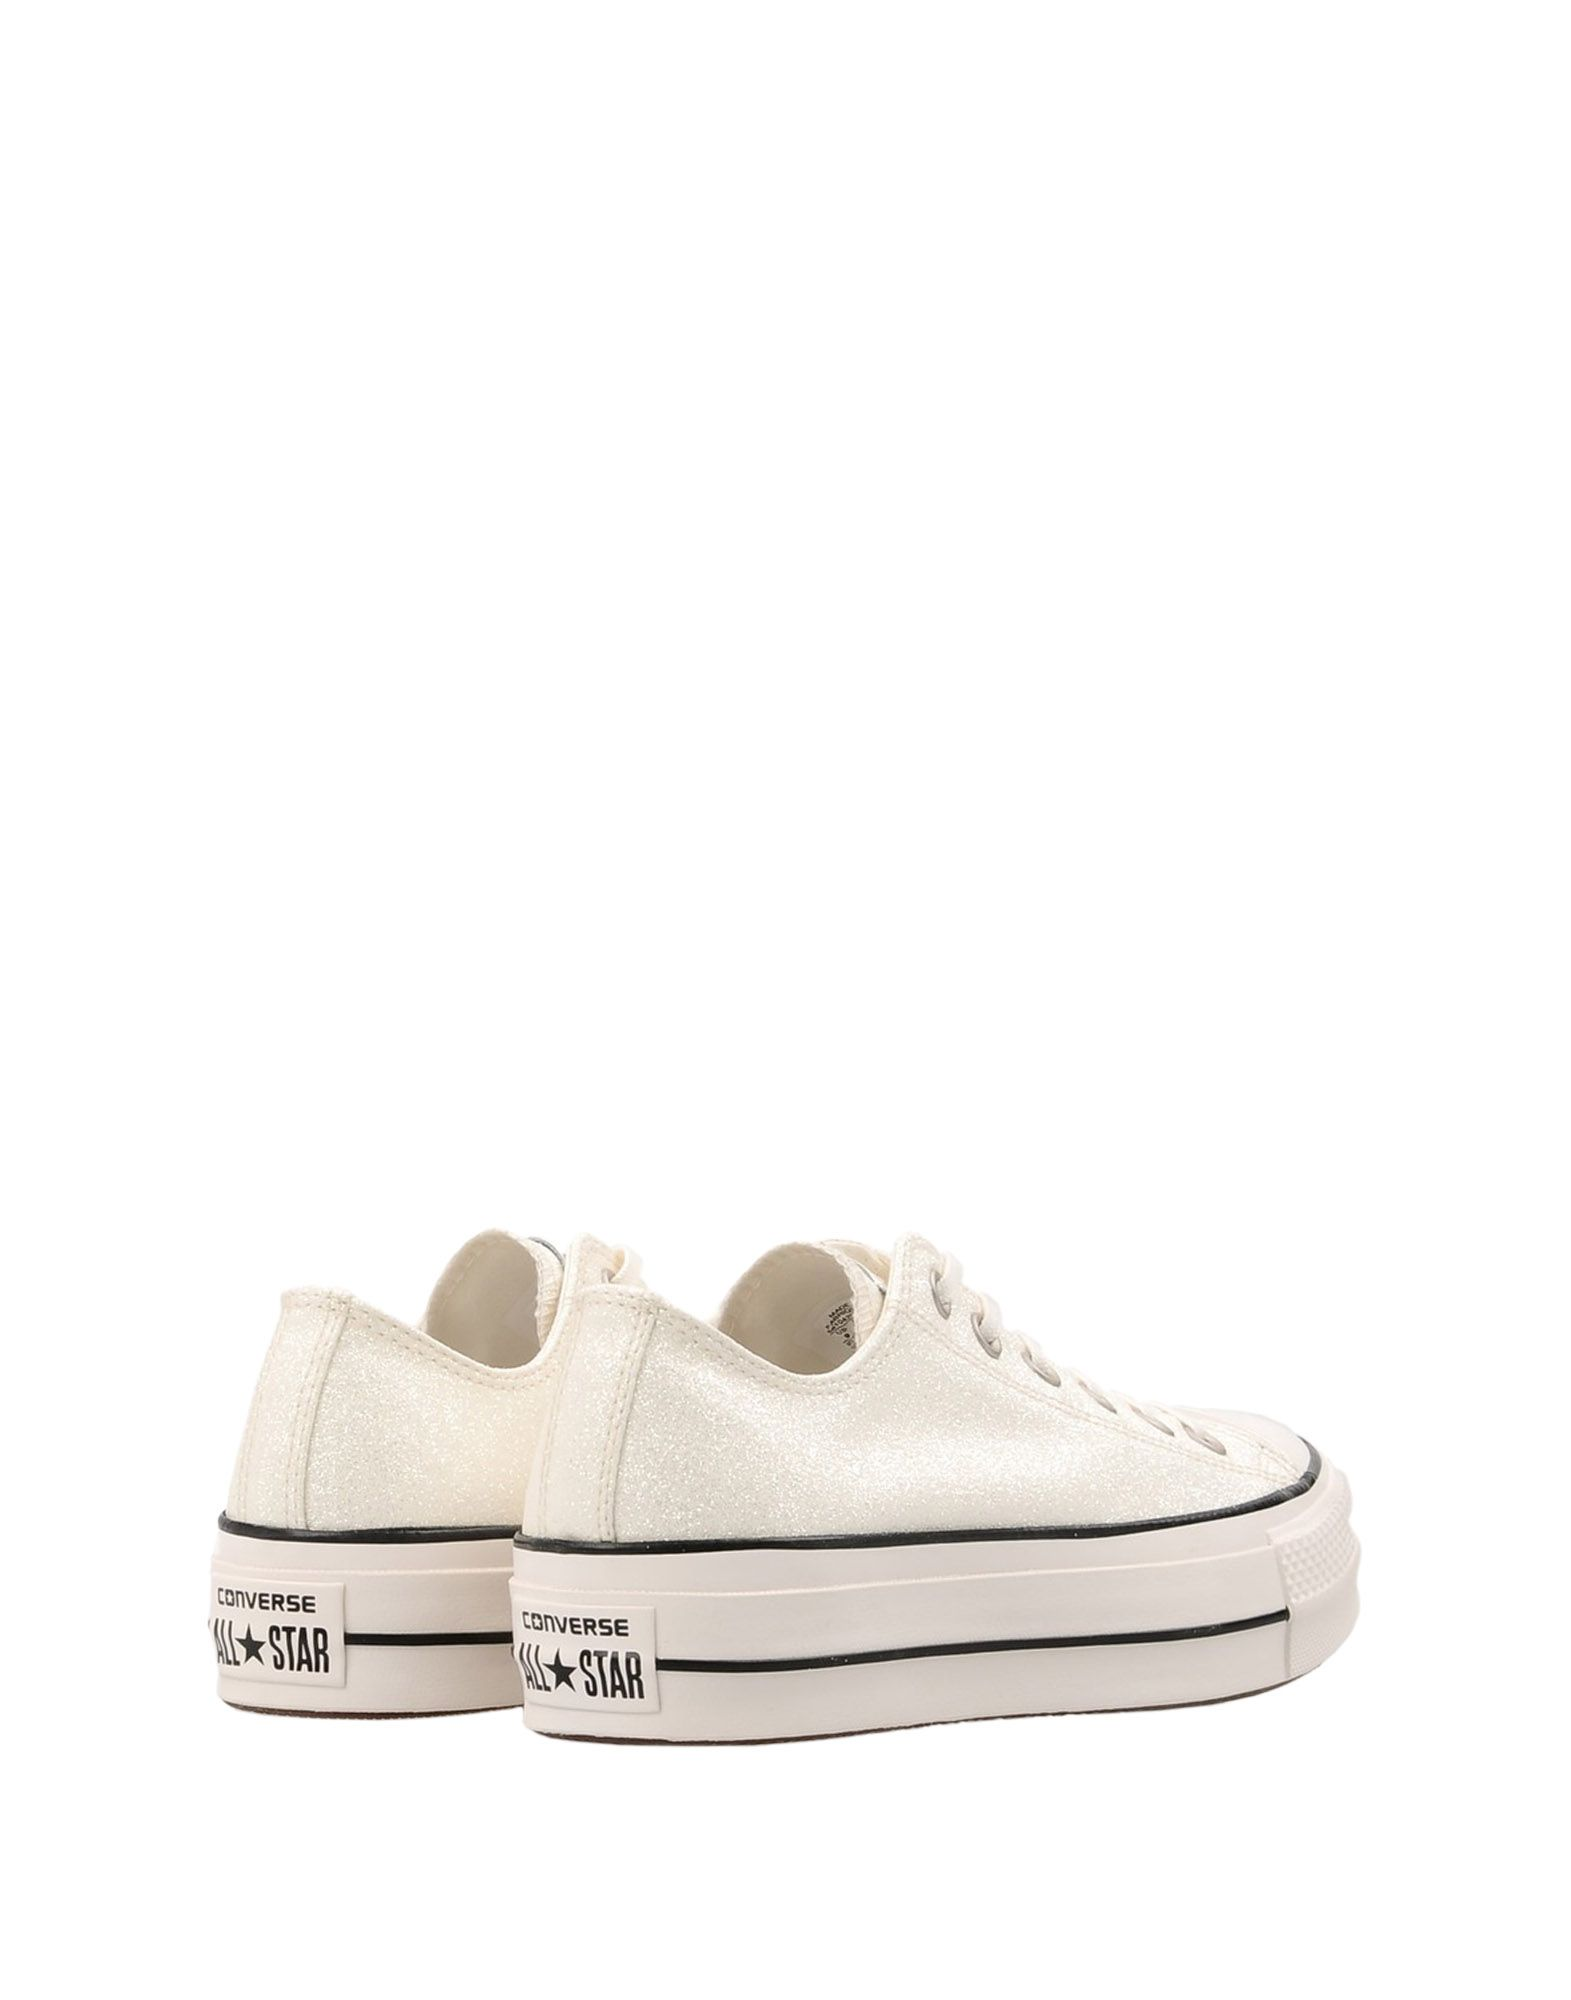 Sneakers Converse All Star Ctas Ox Lift Clean - Femme - Sneakers Converse All Star sur